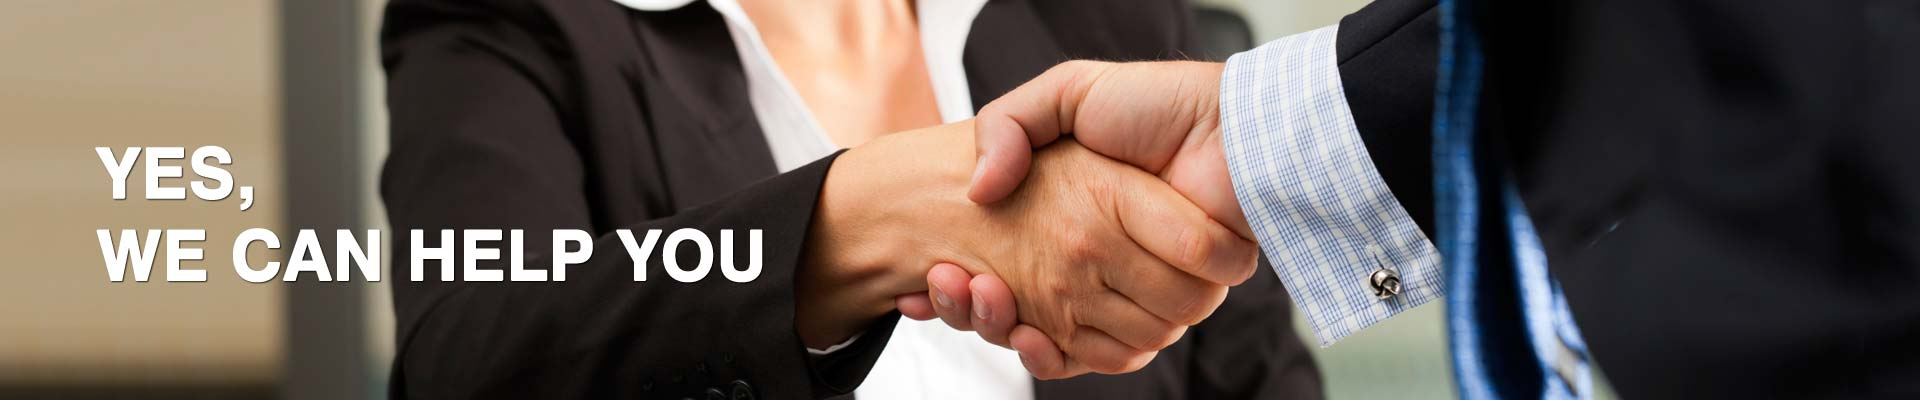 client and solicitor handshake